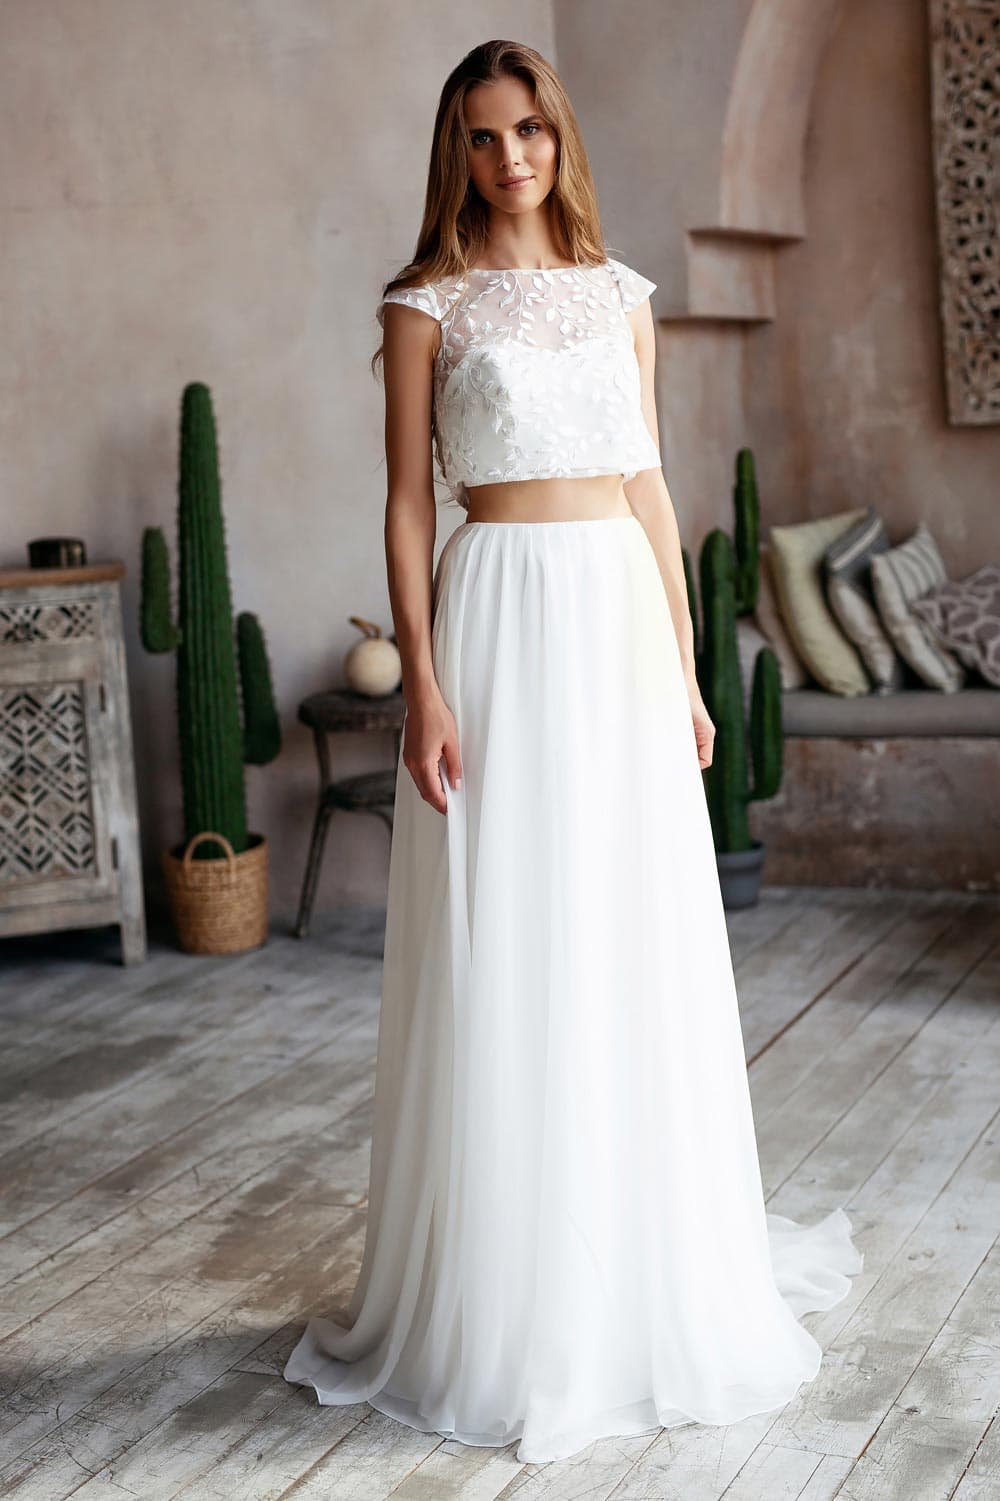 boho wedding dress wedding dress uk boho wedding dress wedding dress shops near me 106